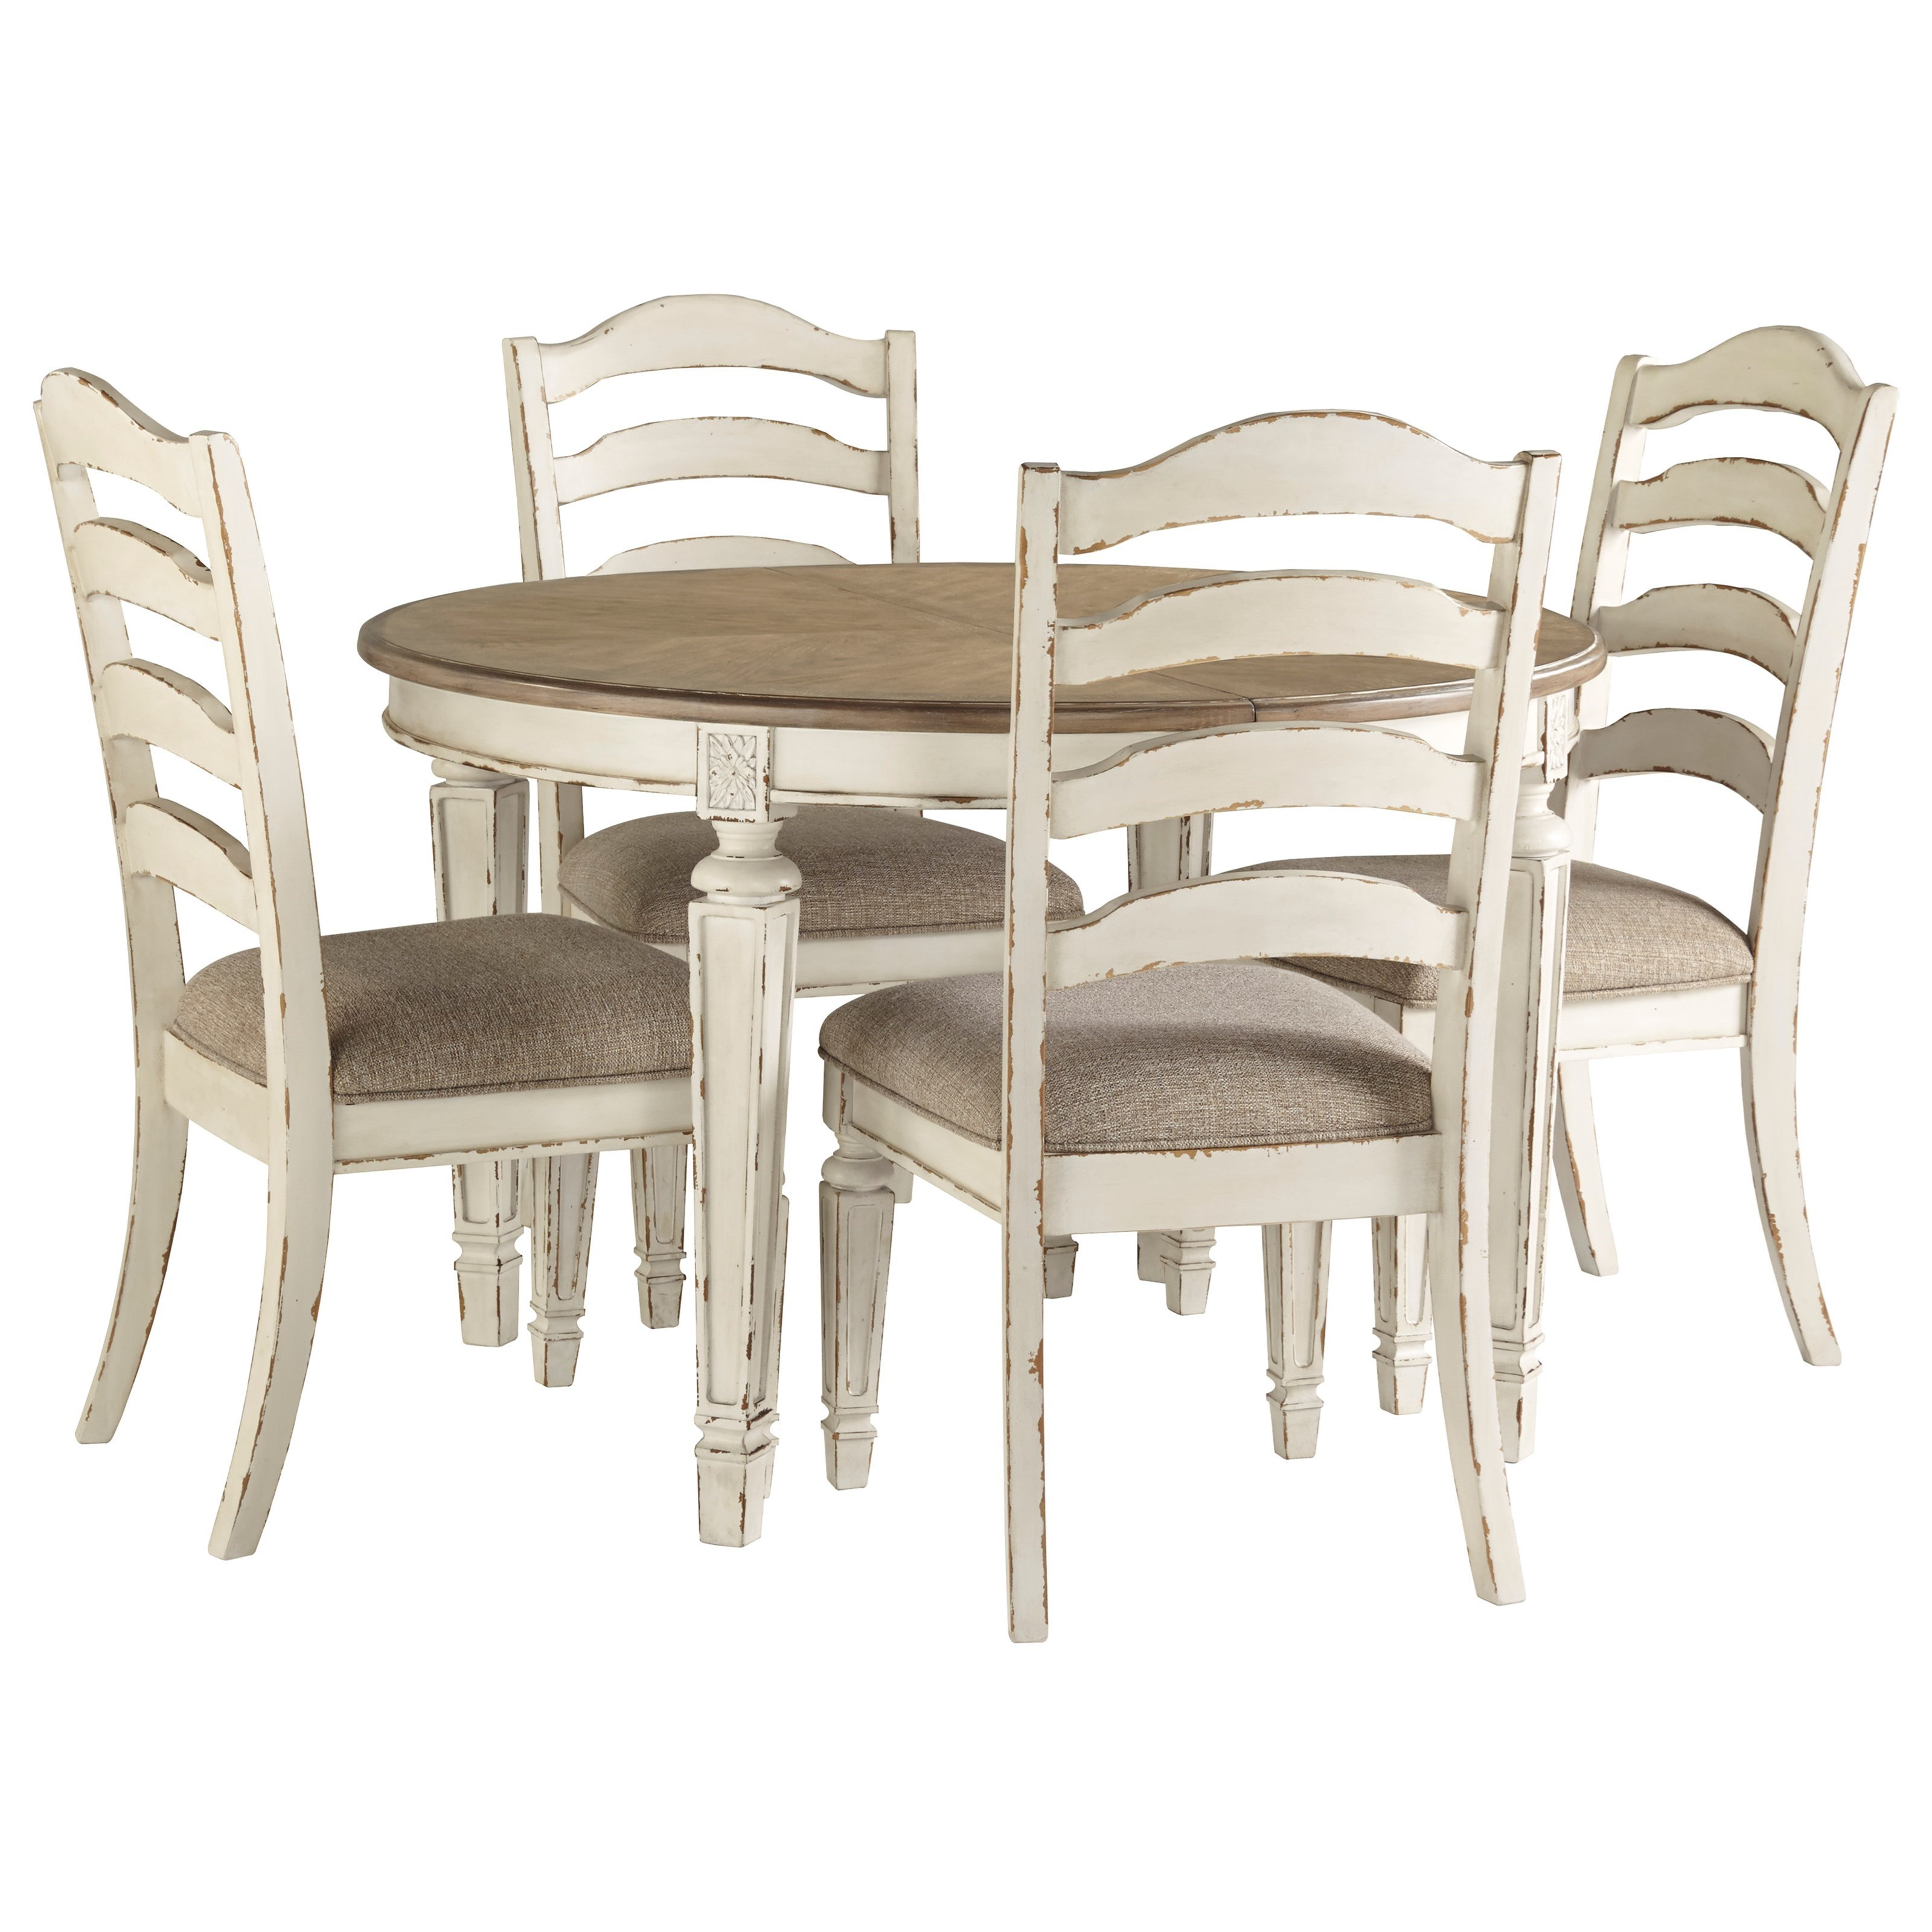 Realyn 5-Piece Table and Chair Set by Signature Design by Ashley at Northeast Factory Direct